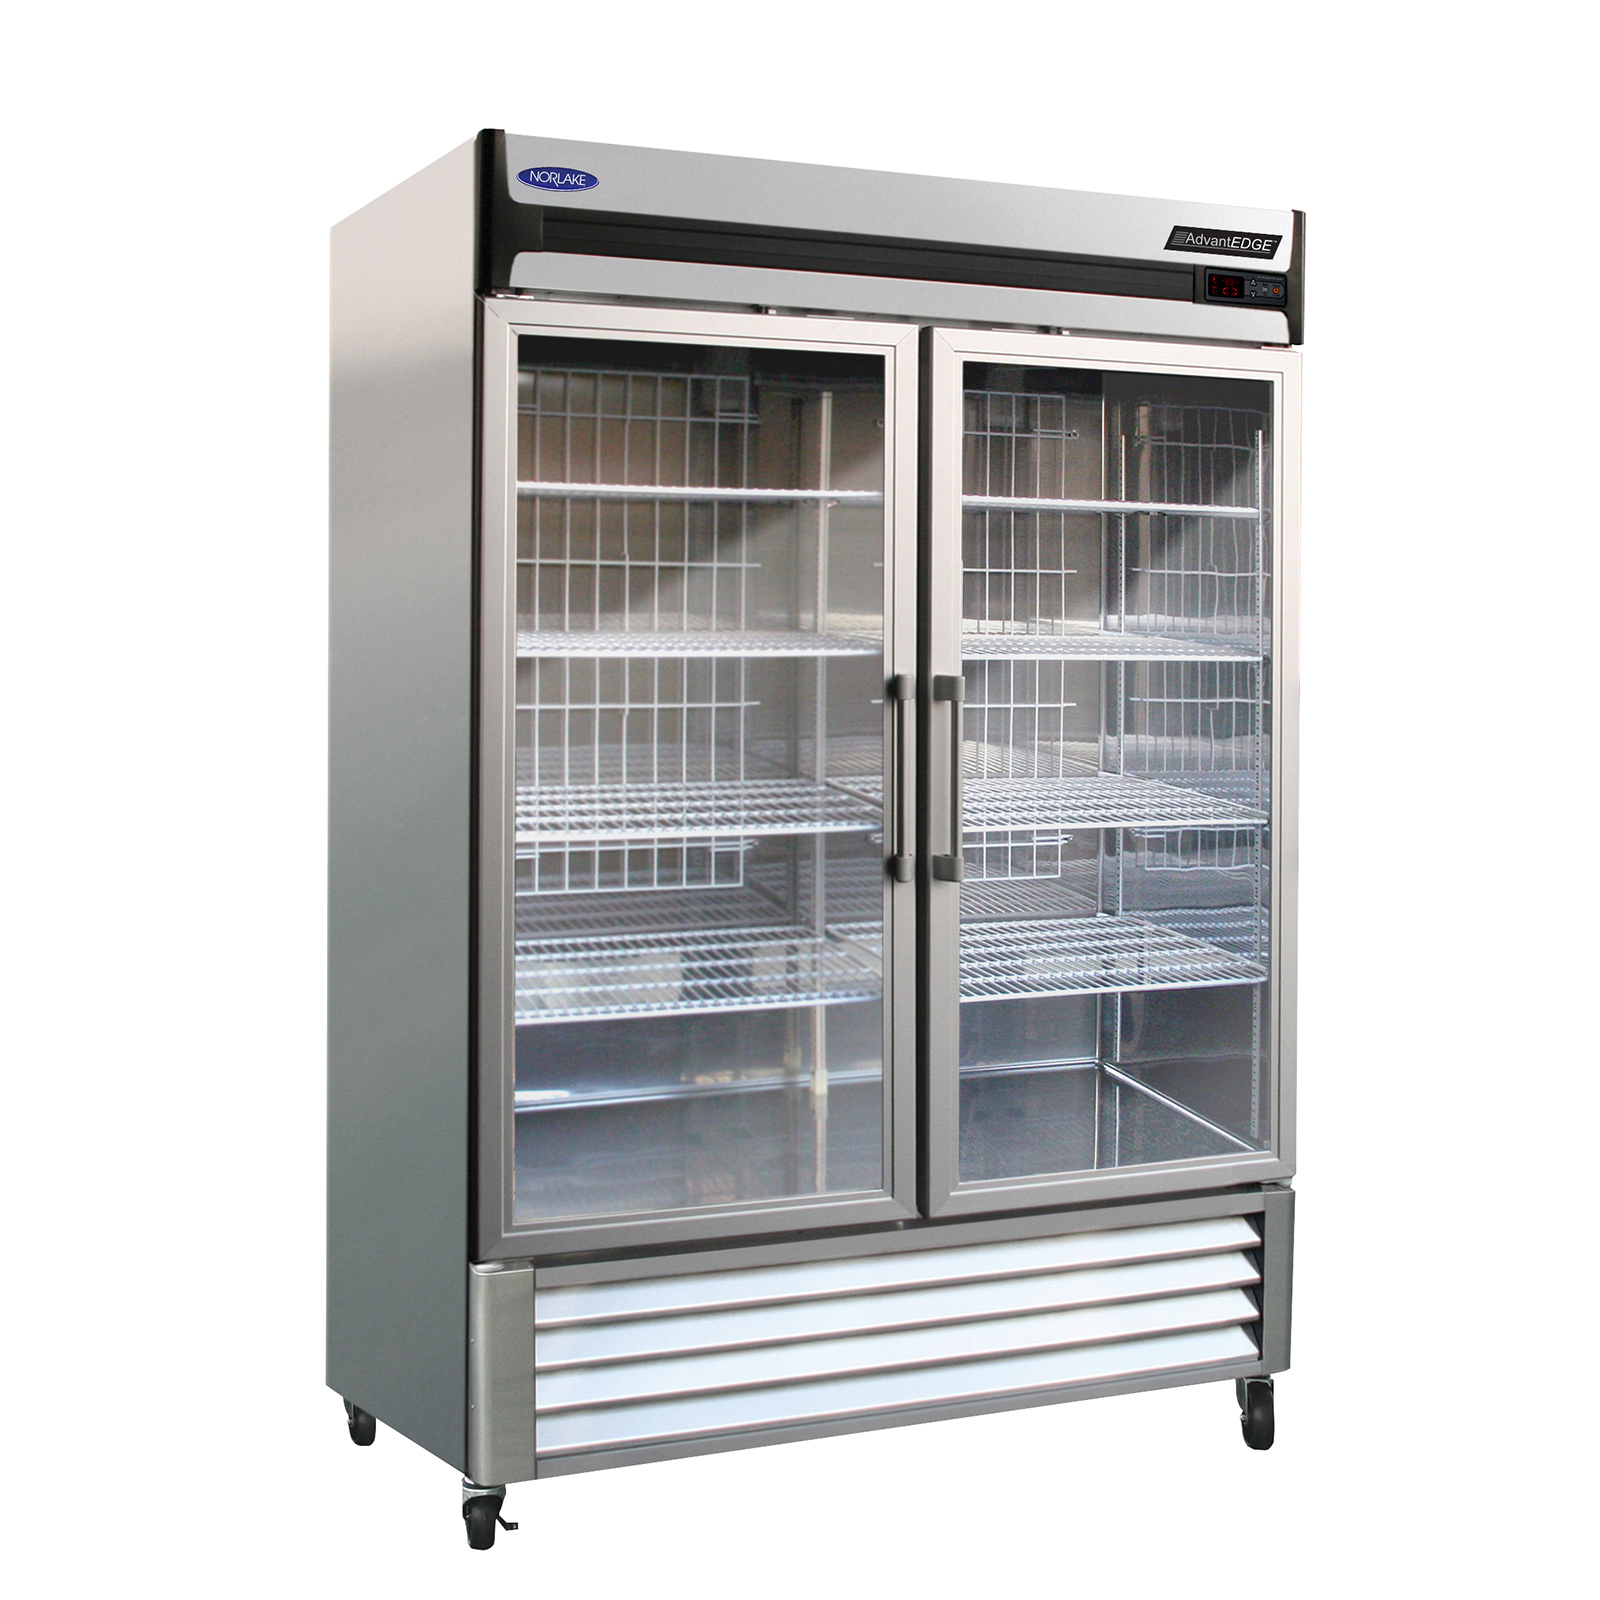 Nor-Lake NLR49-G refrigerator, reach-in